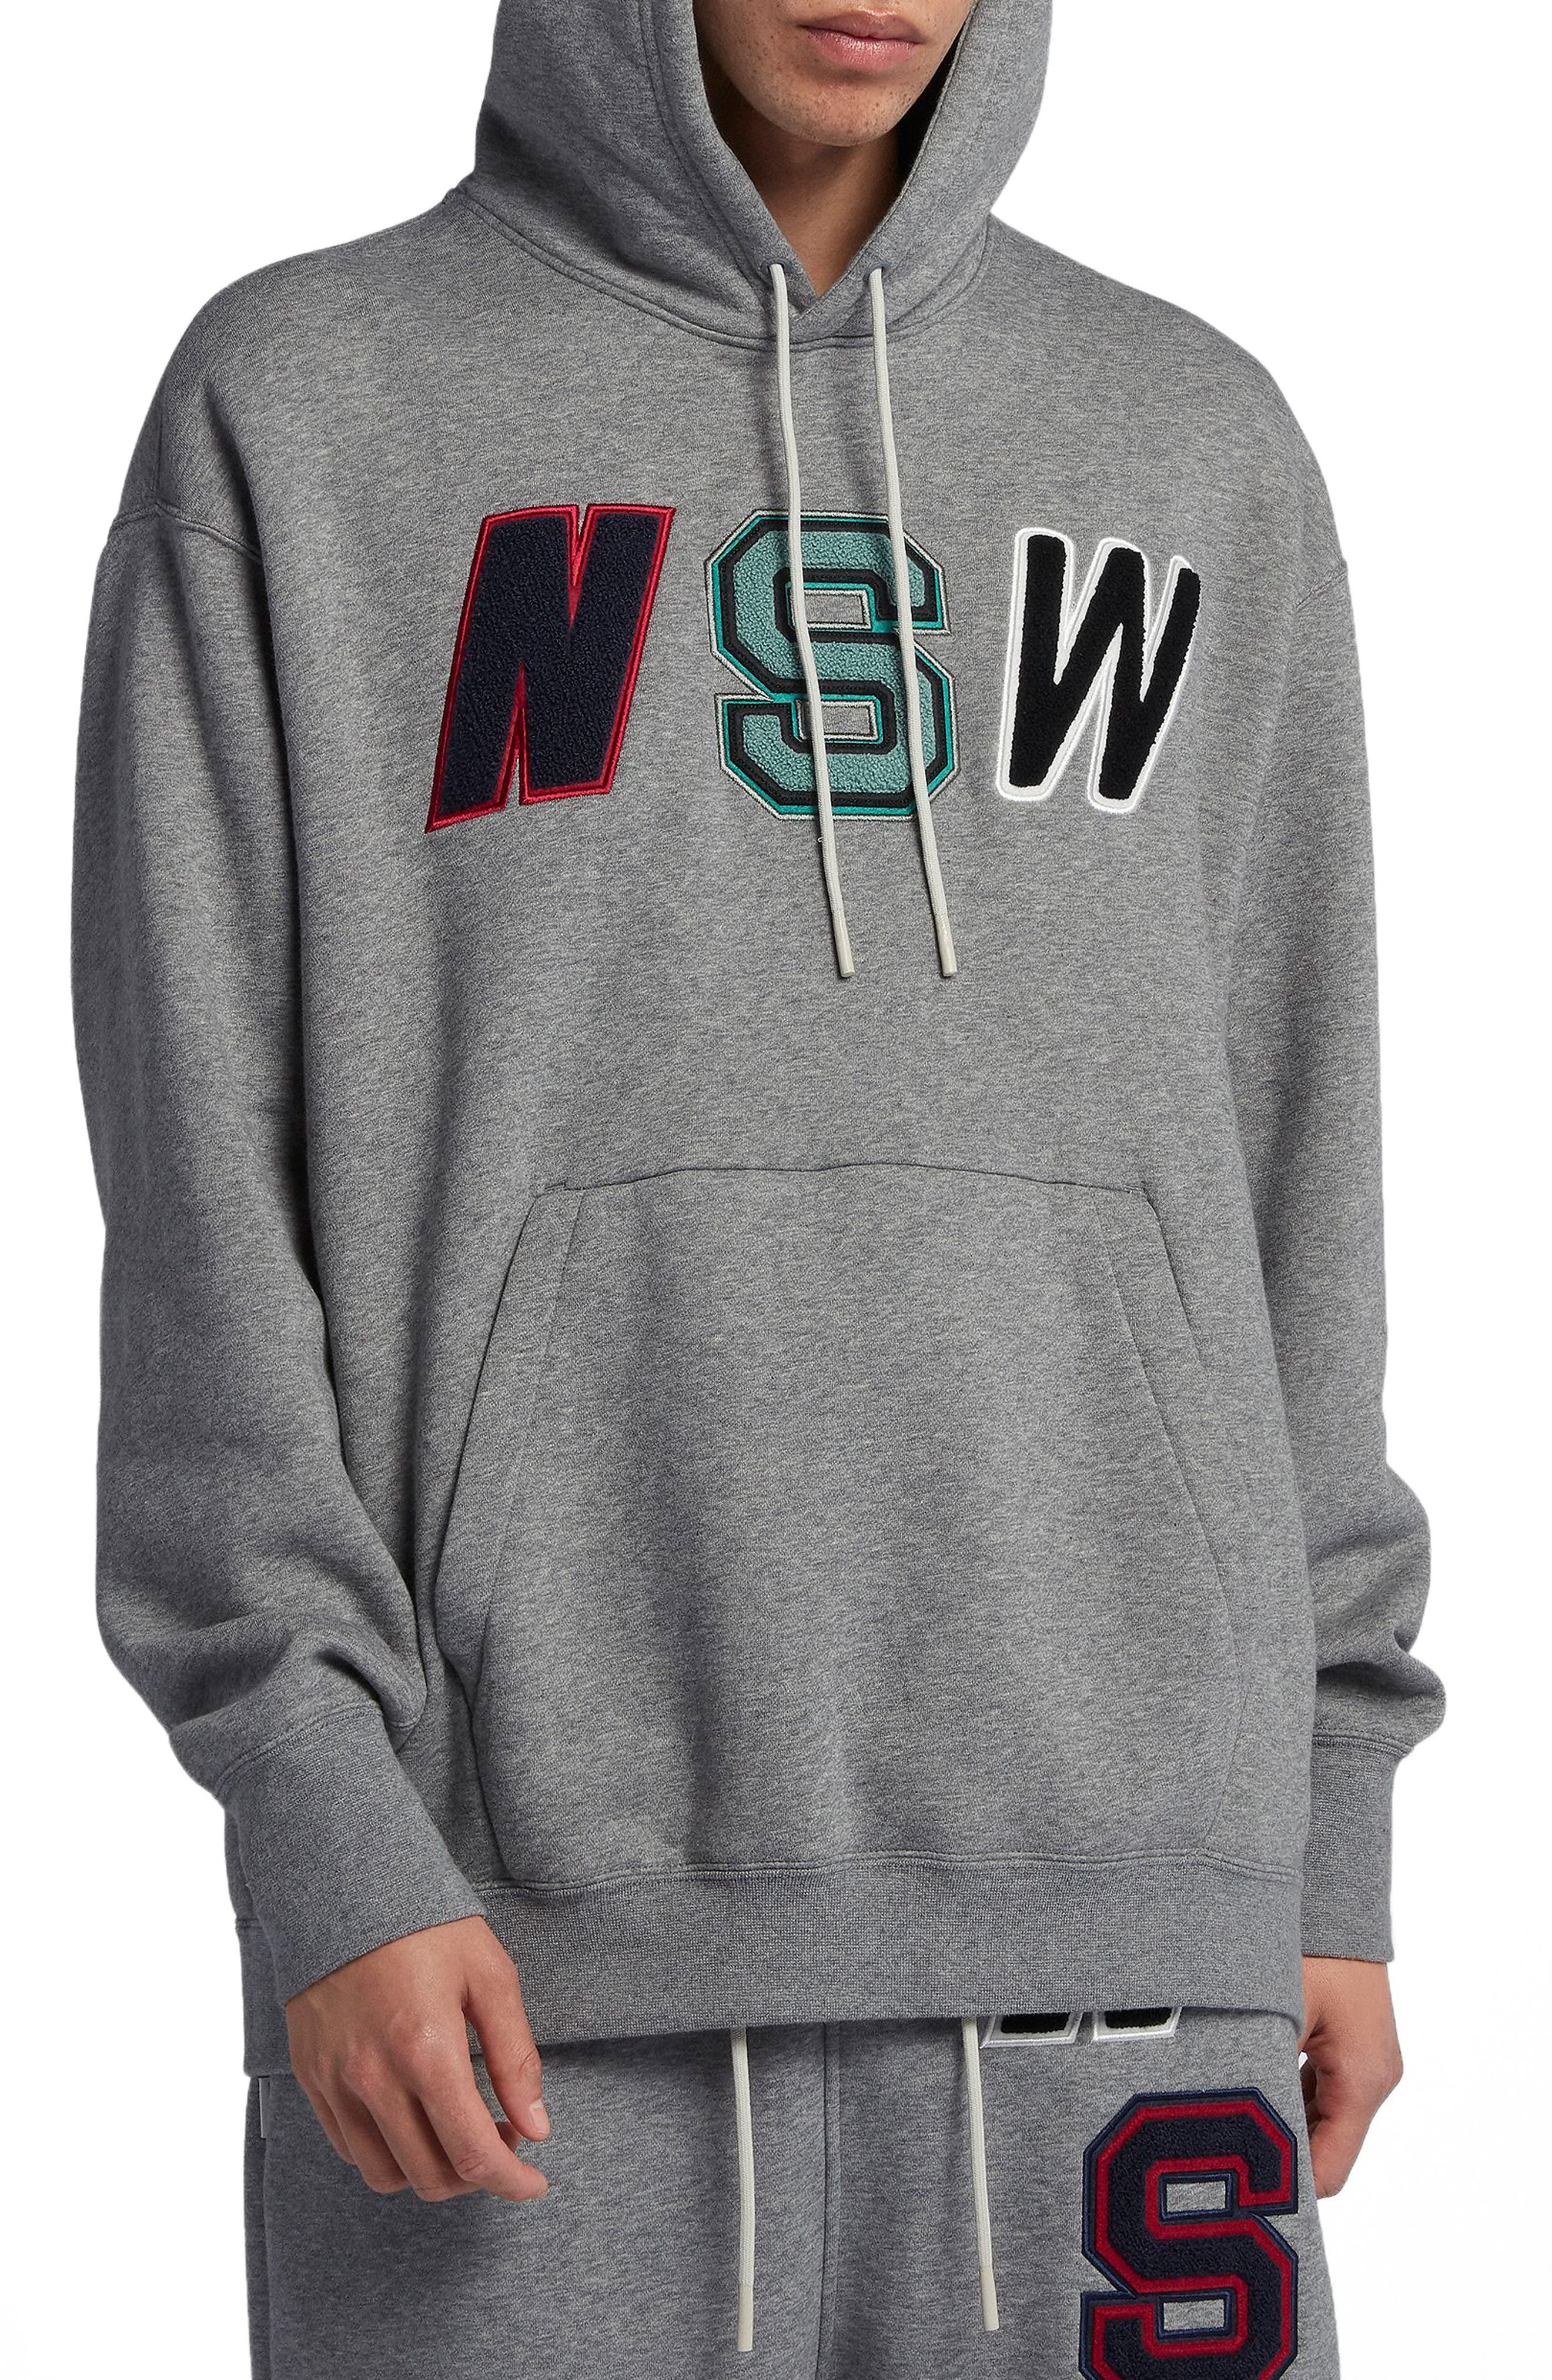 NSW Hoodie,                             Main thumbnail 1, color,                             CARBON HEATHER